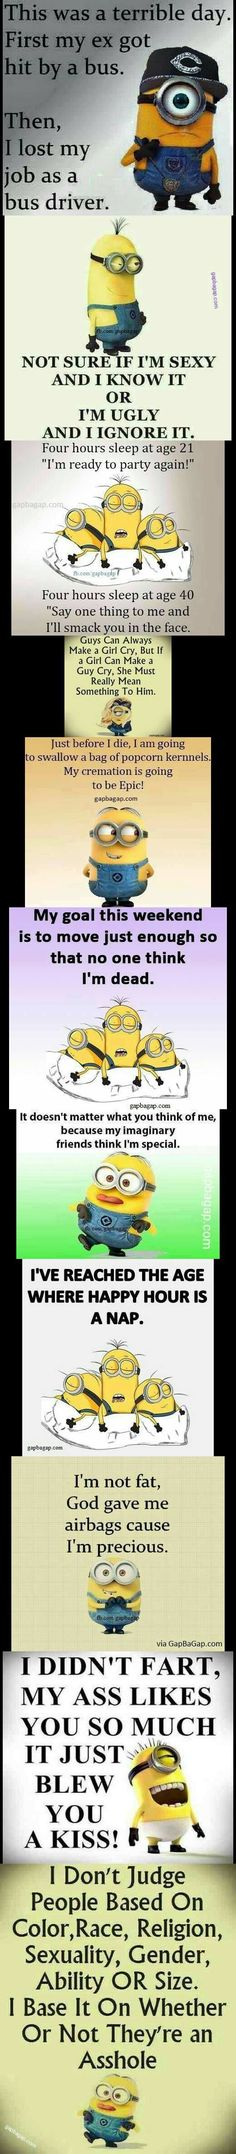 Top 11 Funny Minion quotes